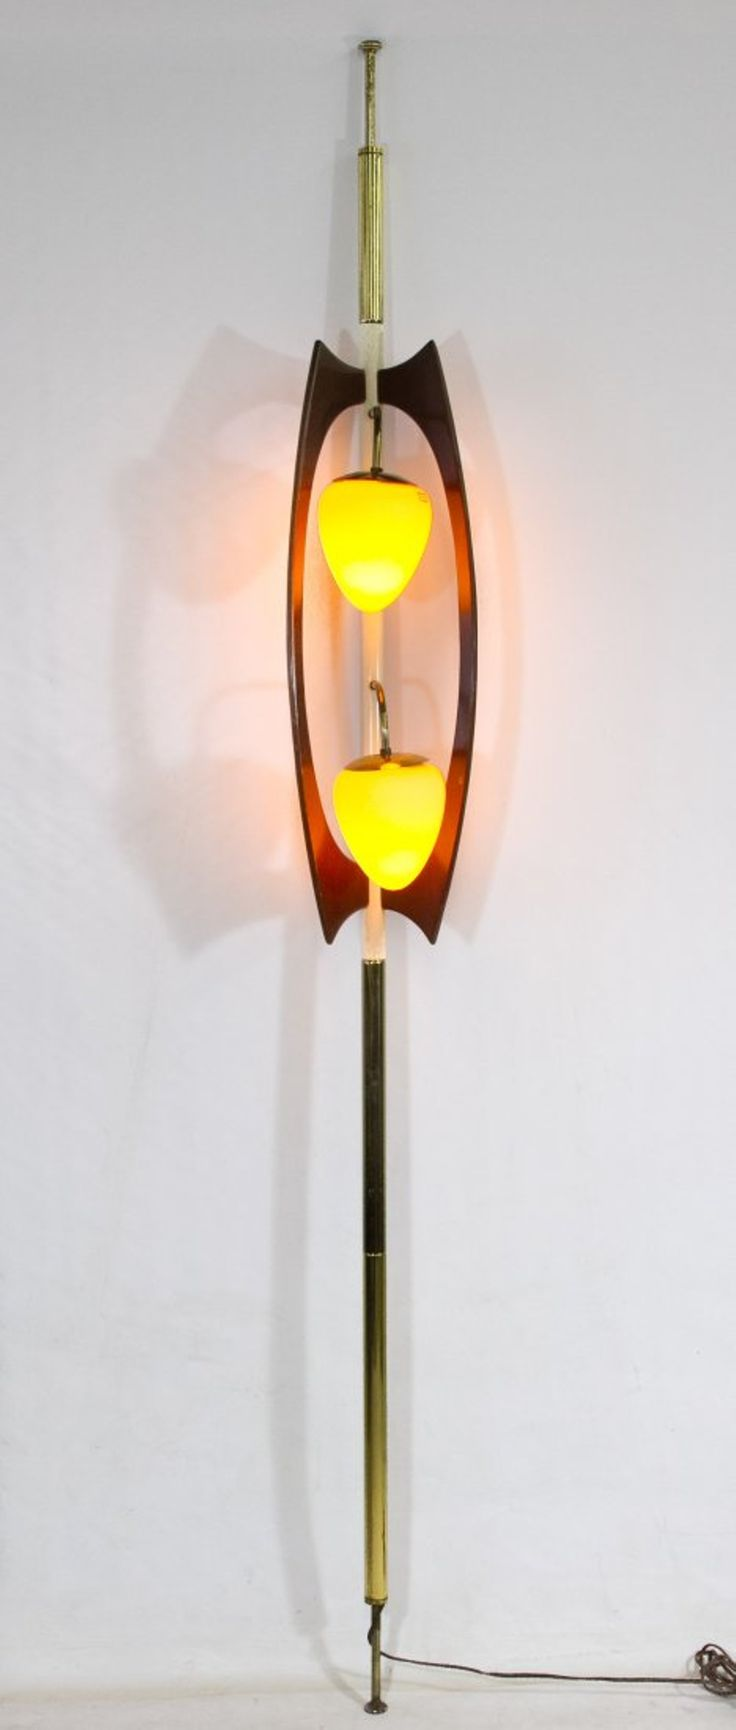 Hourglass mid-century tension pole lamp